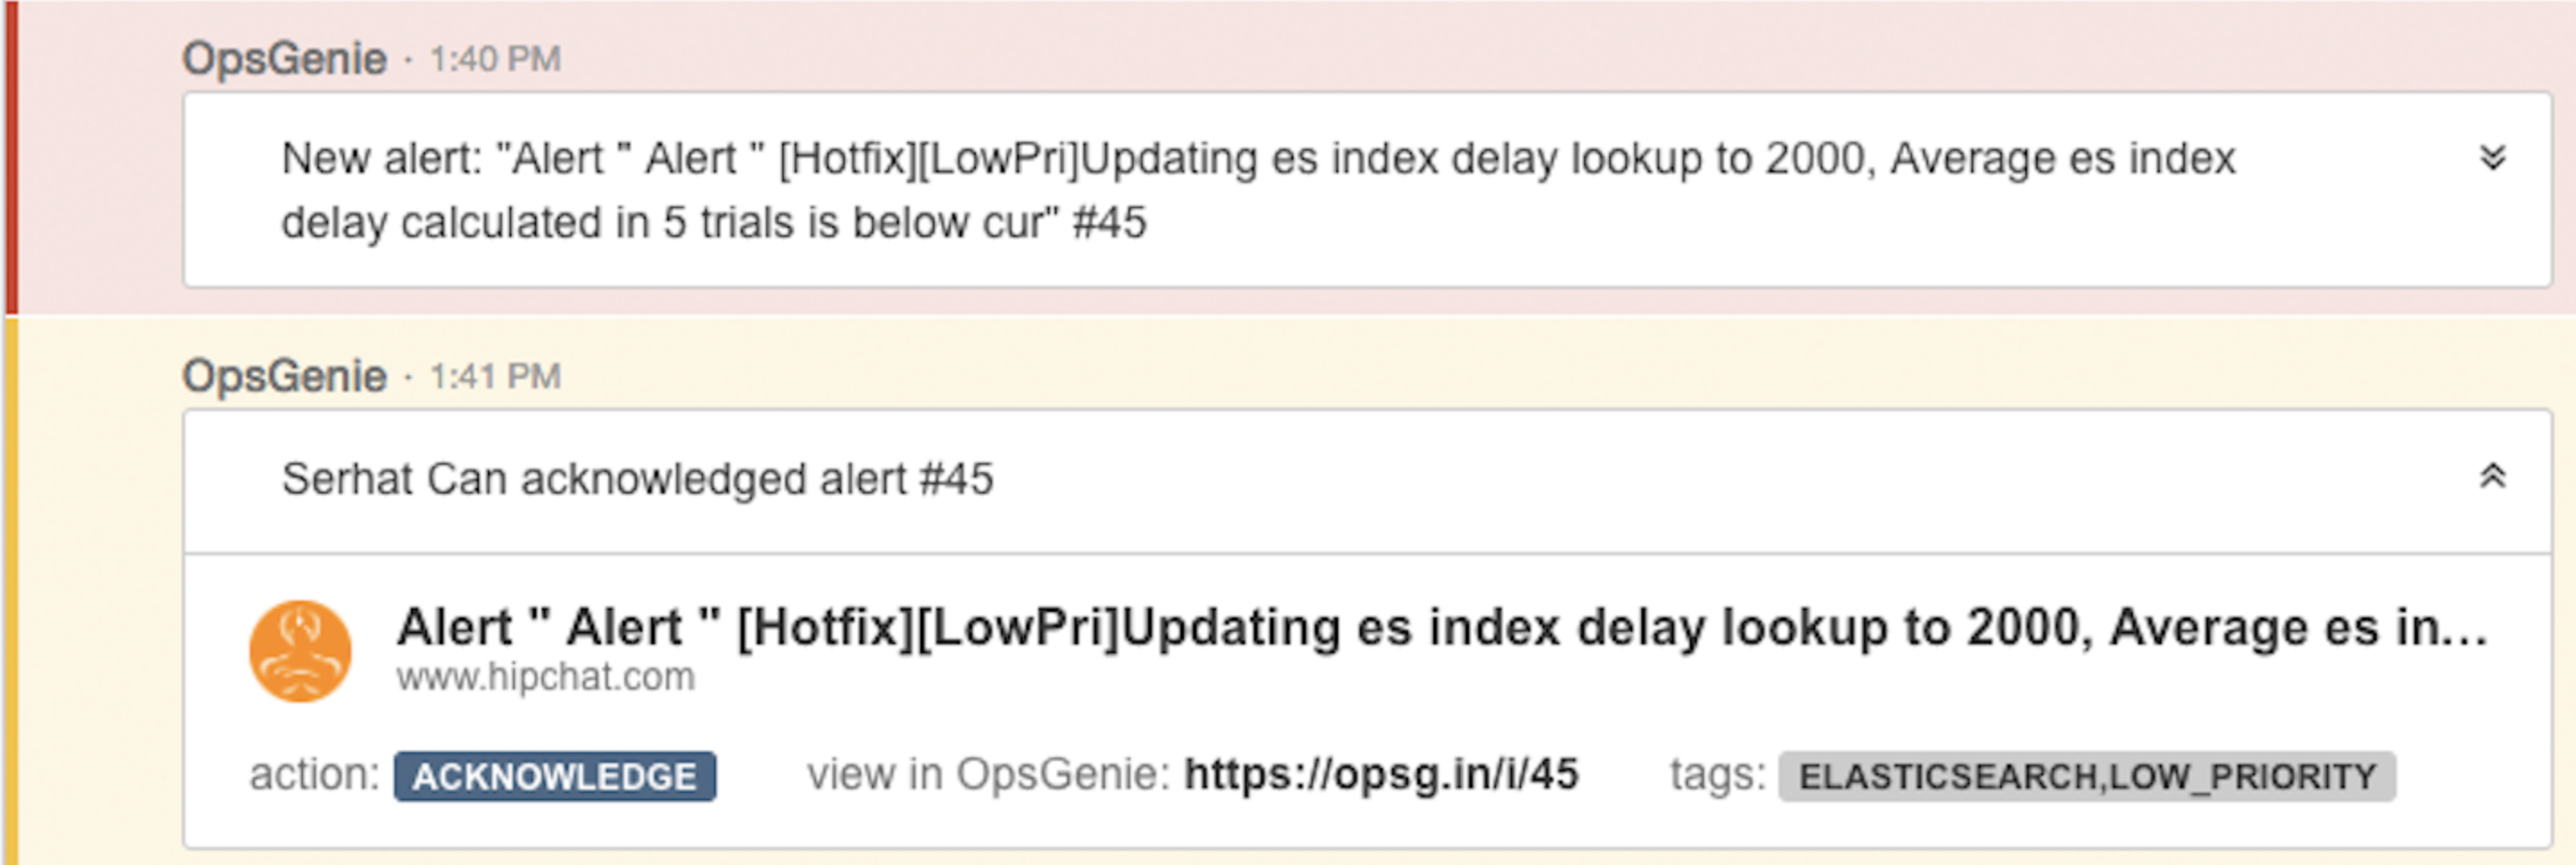 A screenshot from HipChat integration with alert details expandedç